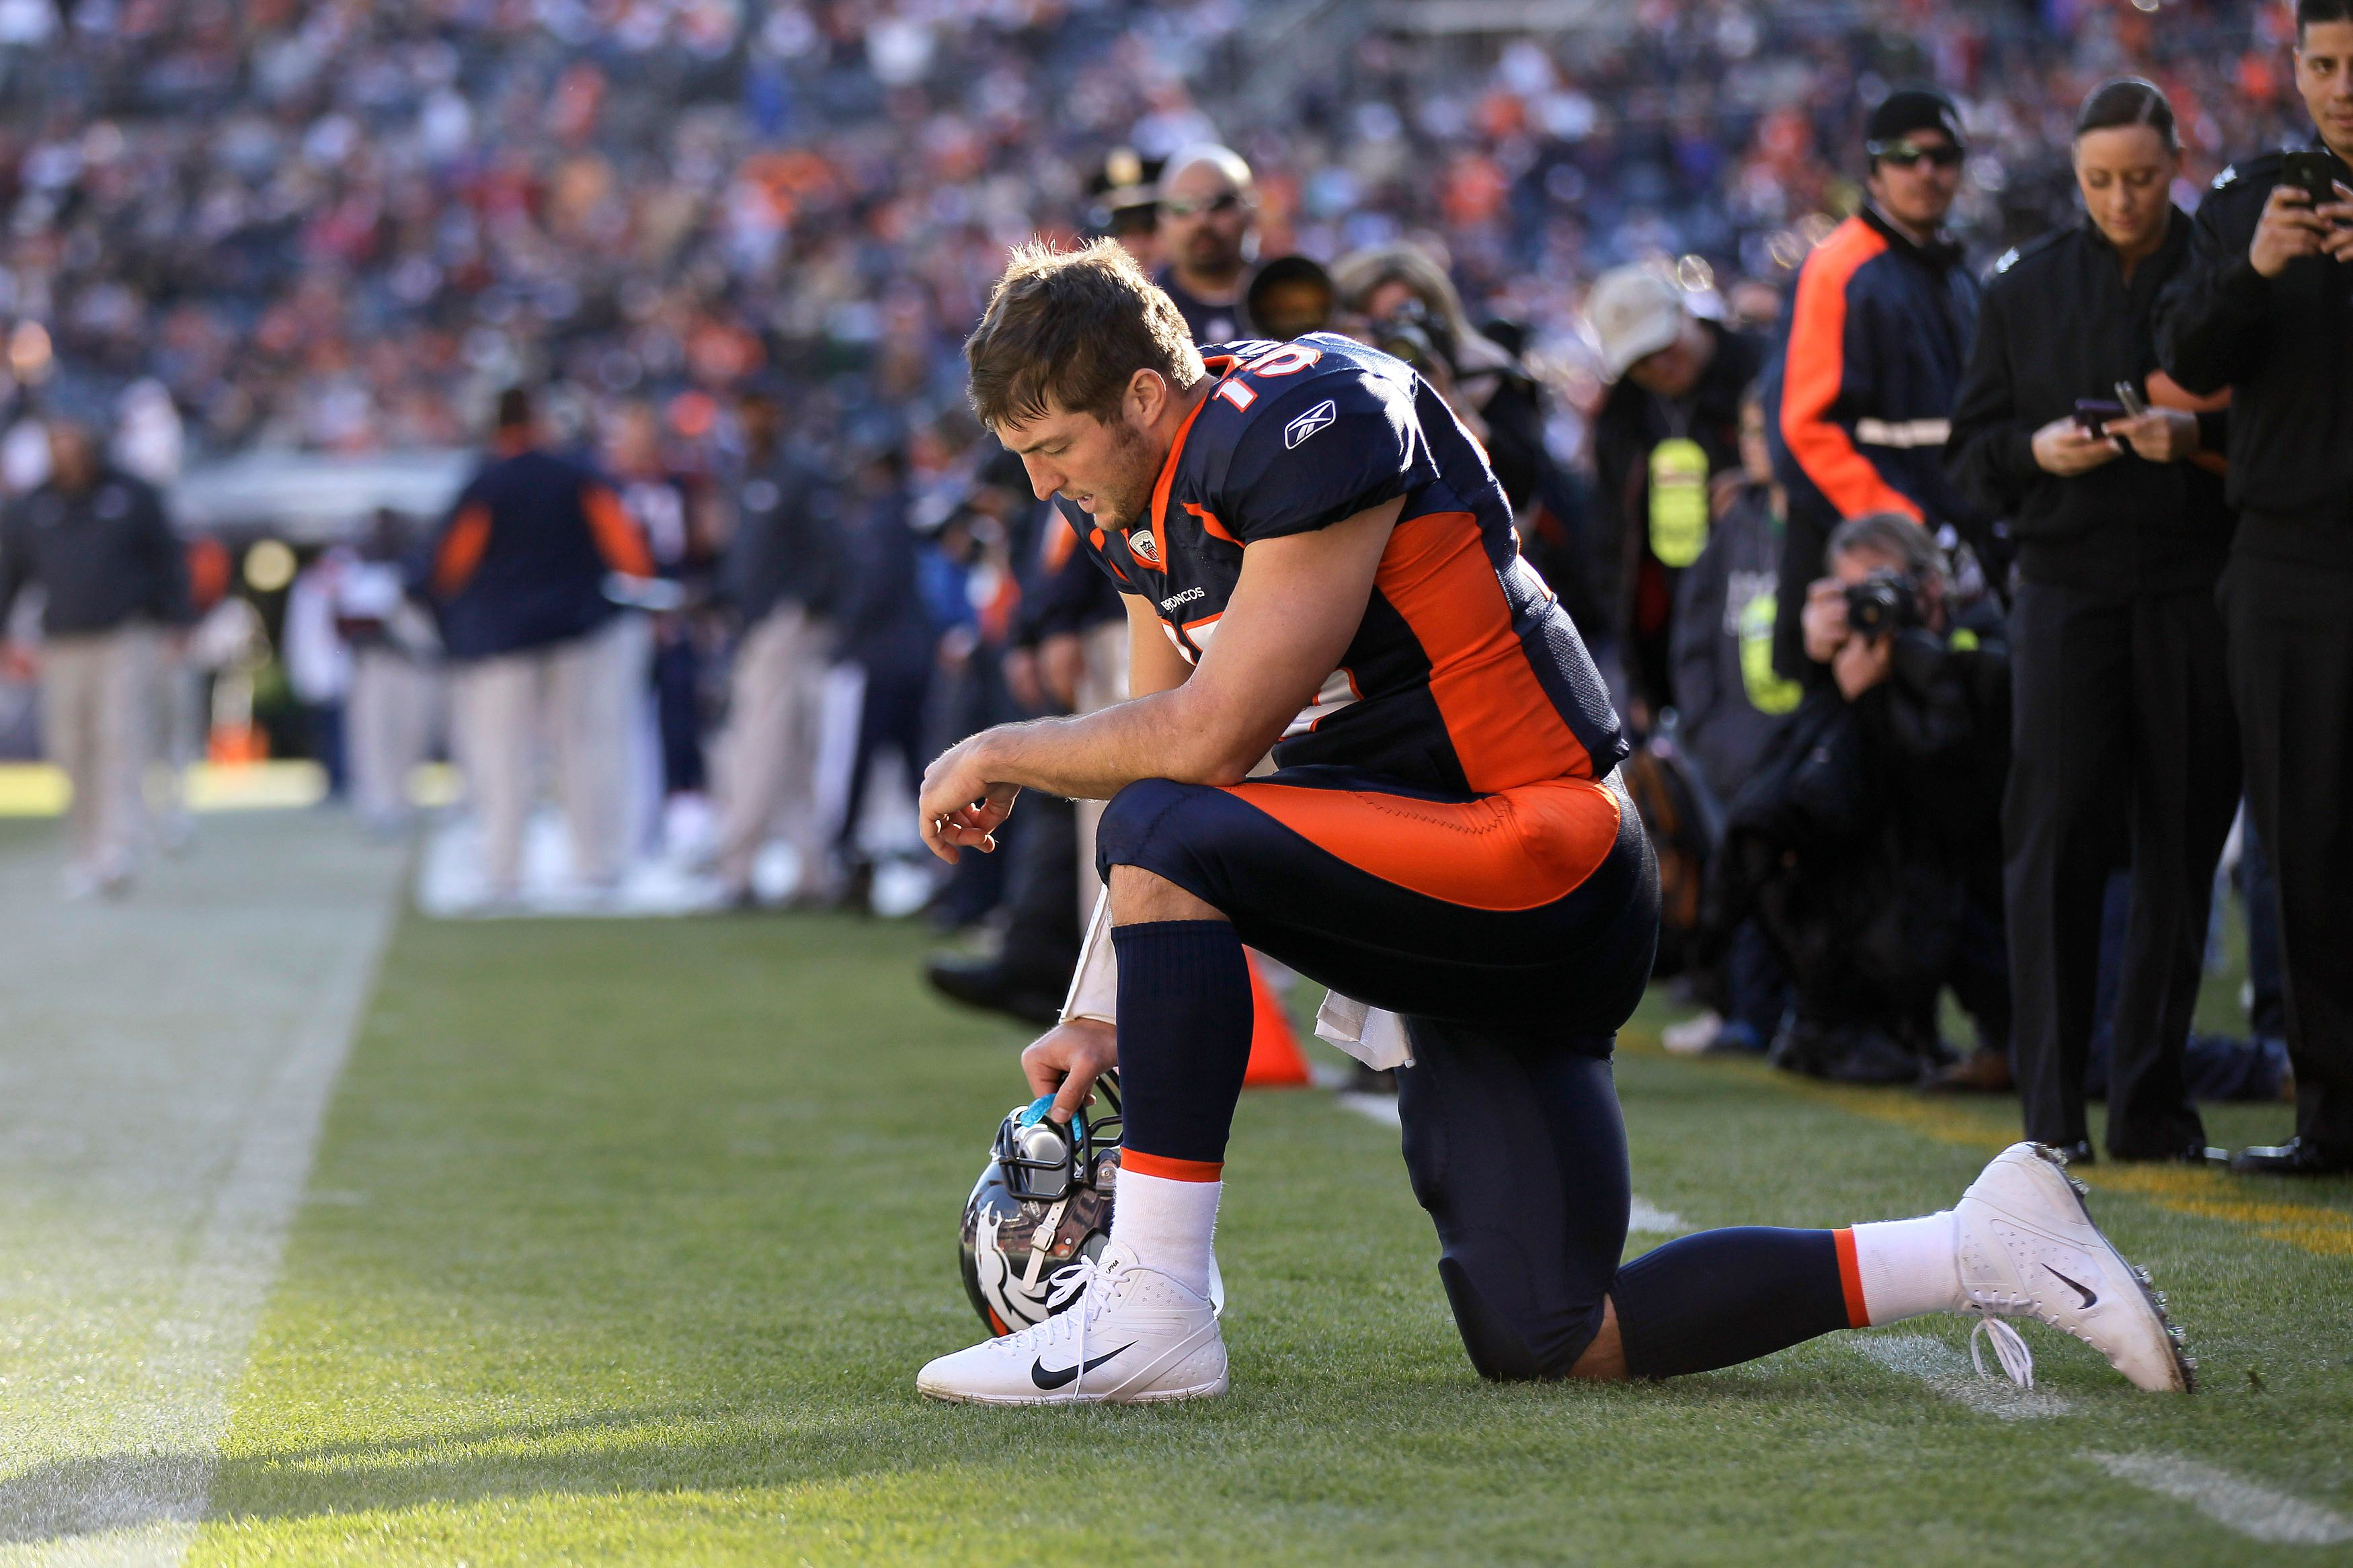 6. Tebowing